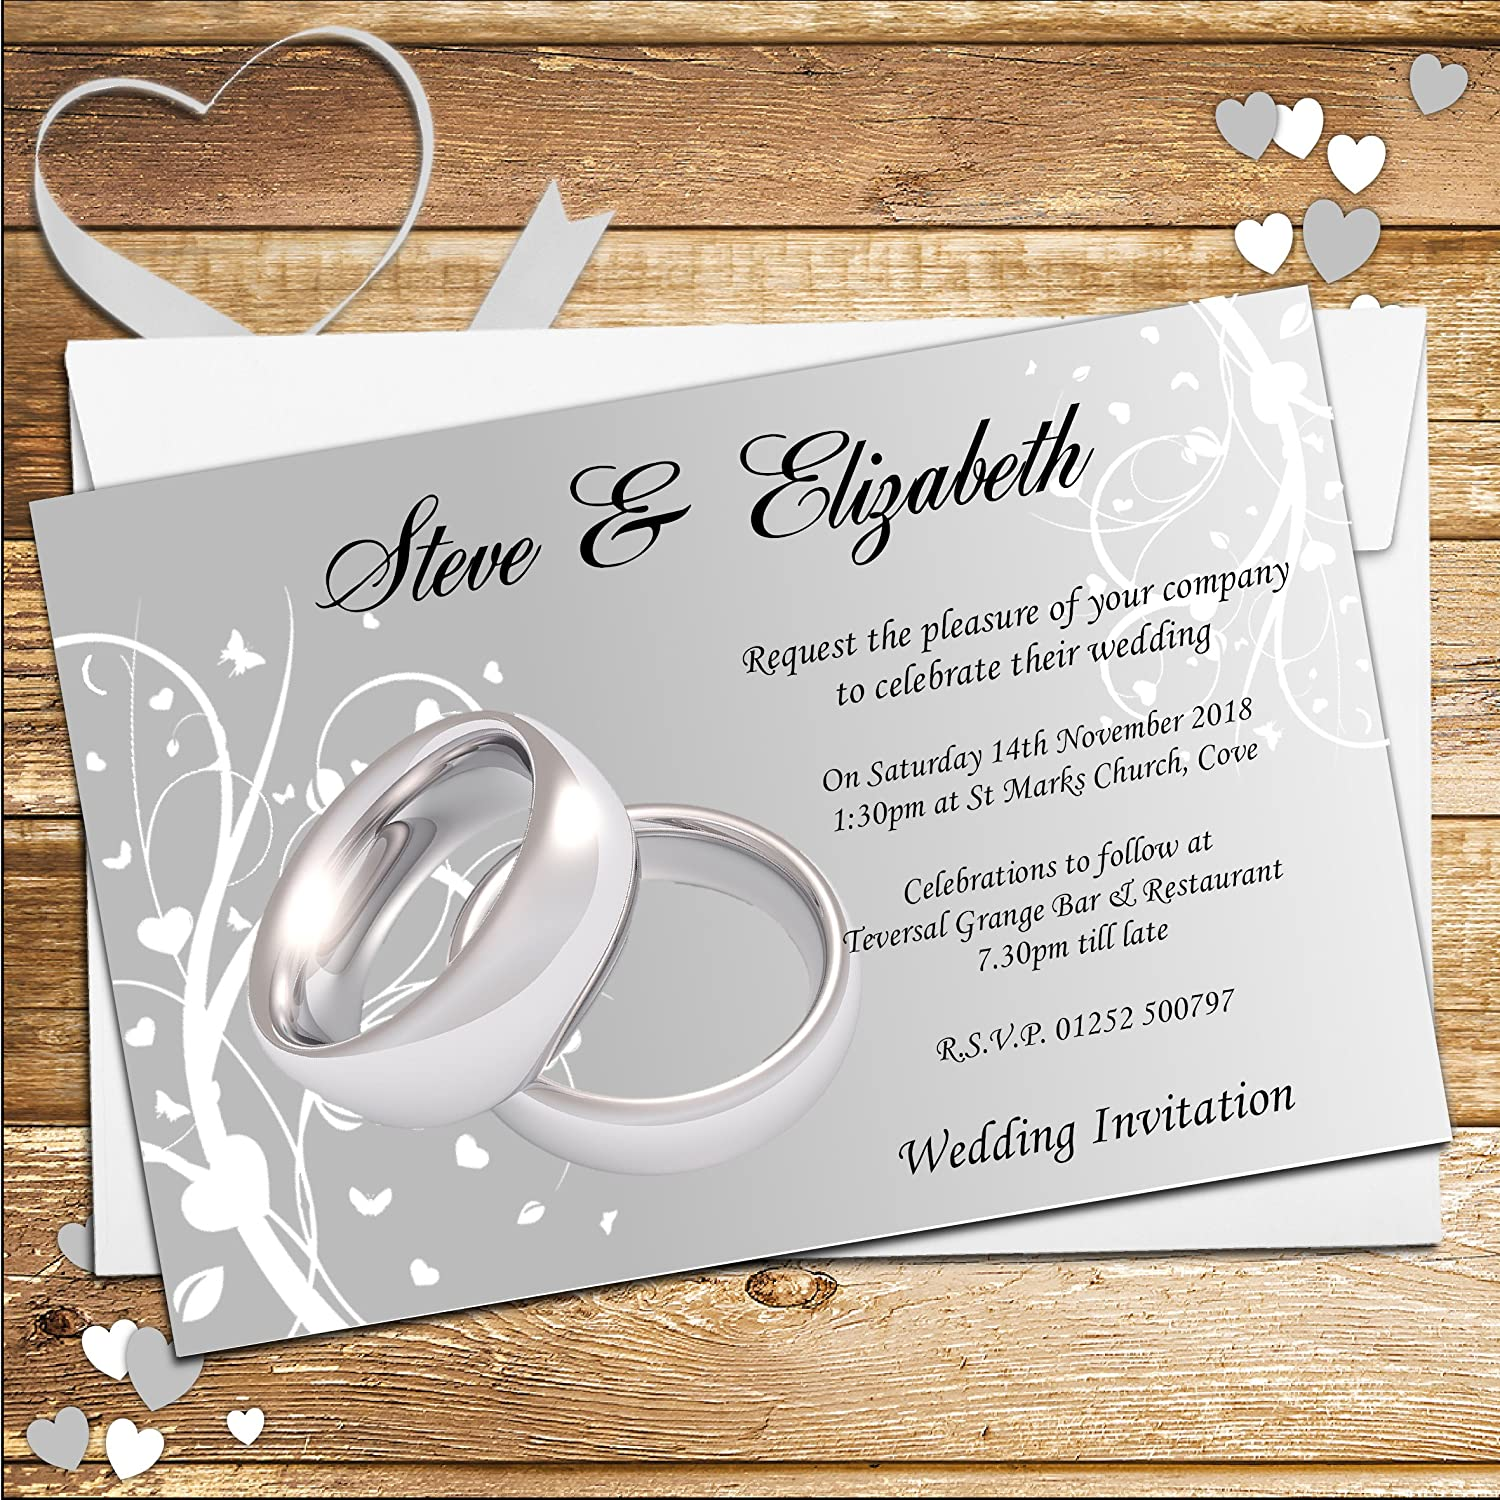 10 Personalised Silver Rings Wedding Invitations N44: Amazon.co.uk ...